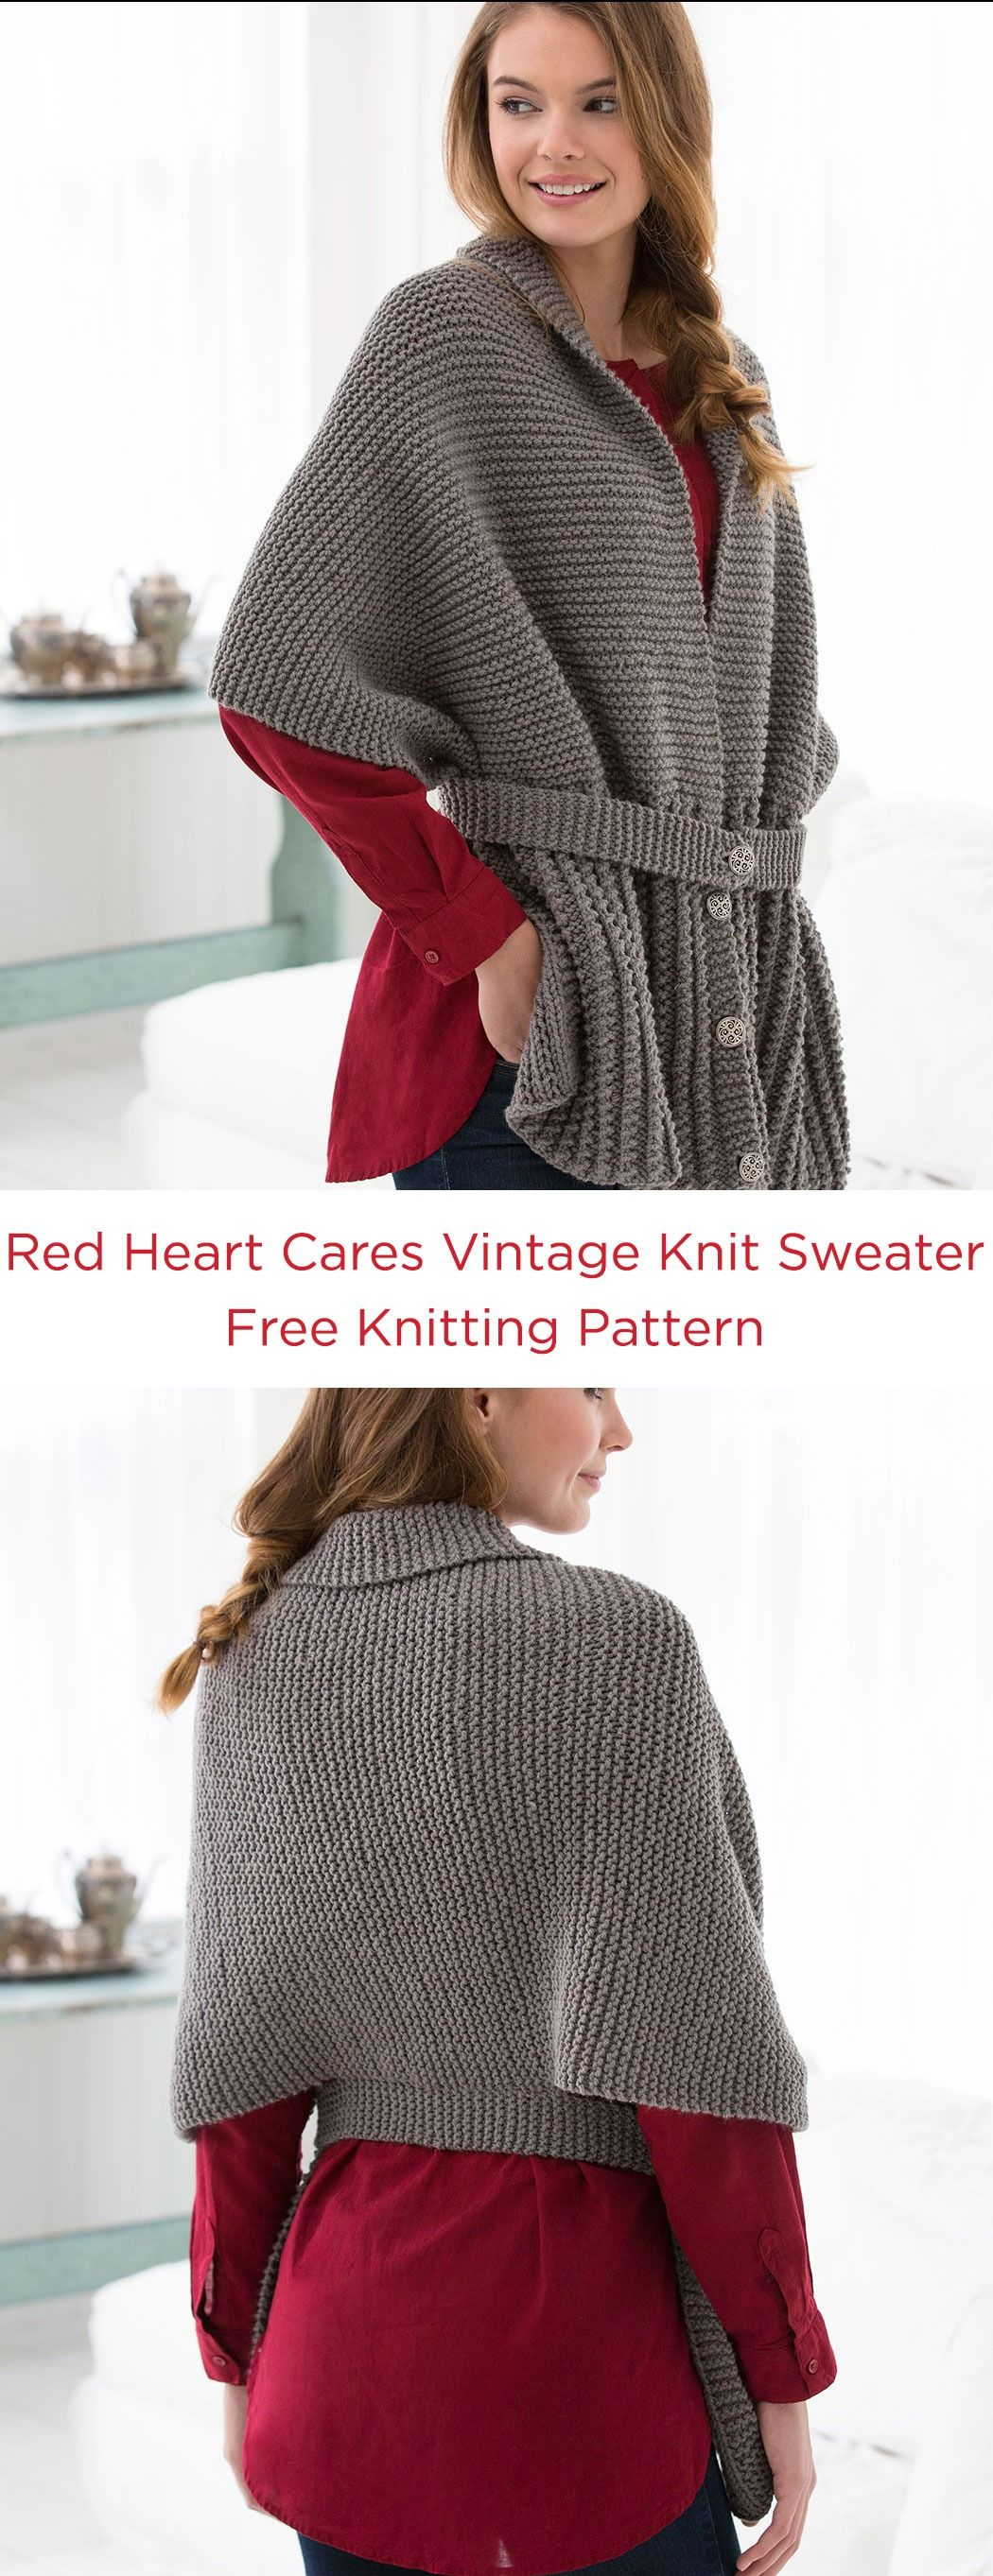 Red Heart Cares Vintage Knit Sweater Free Knitting Pattern in Red ...